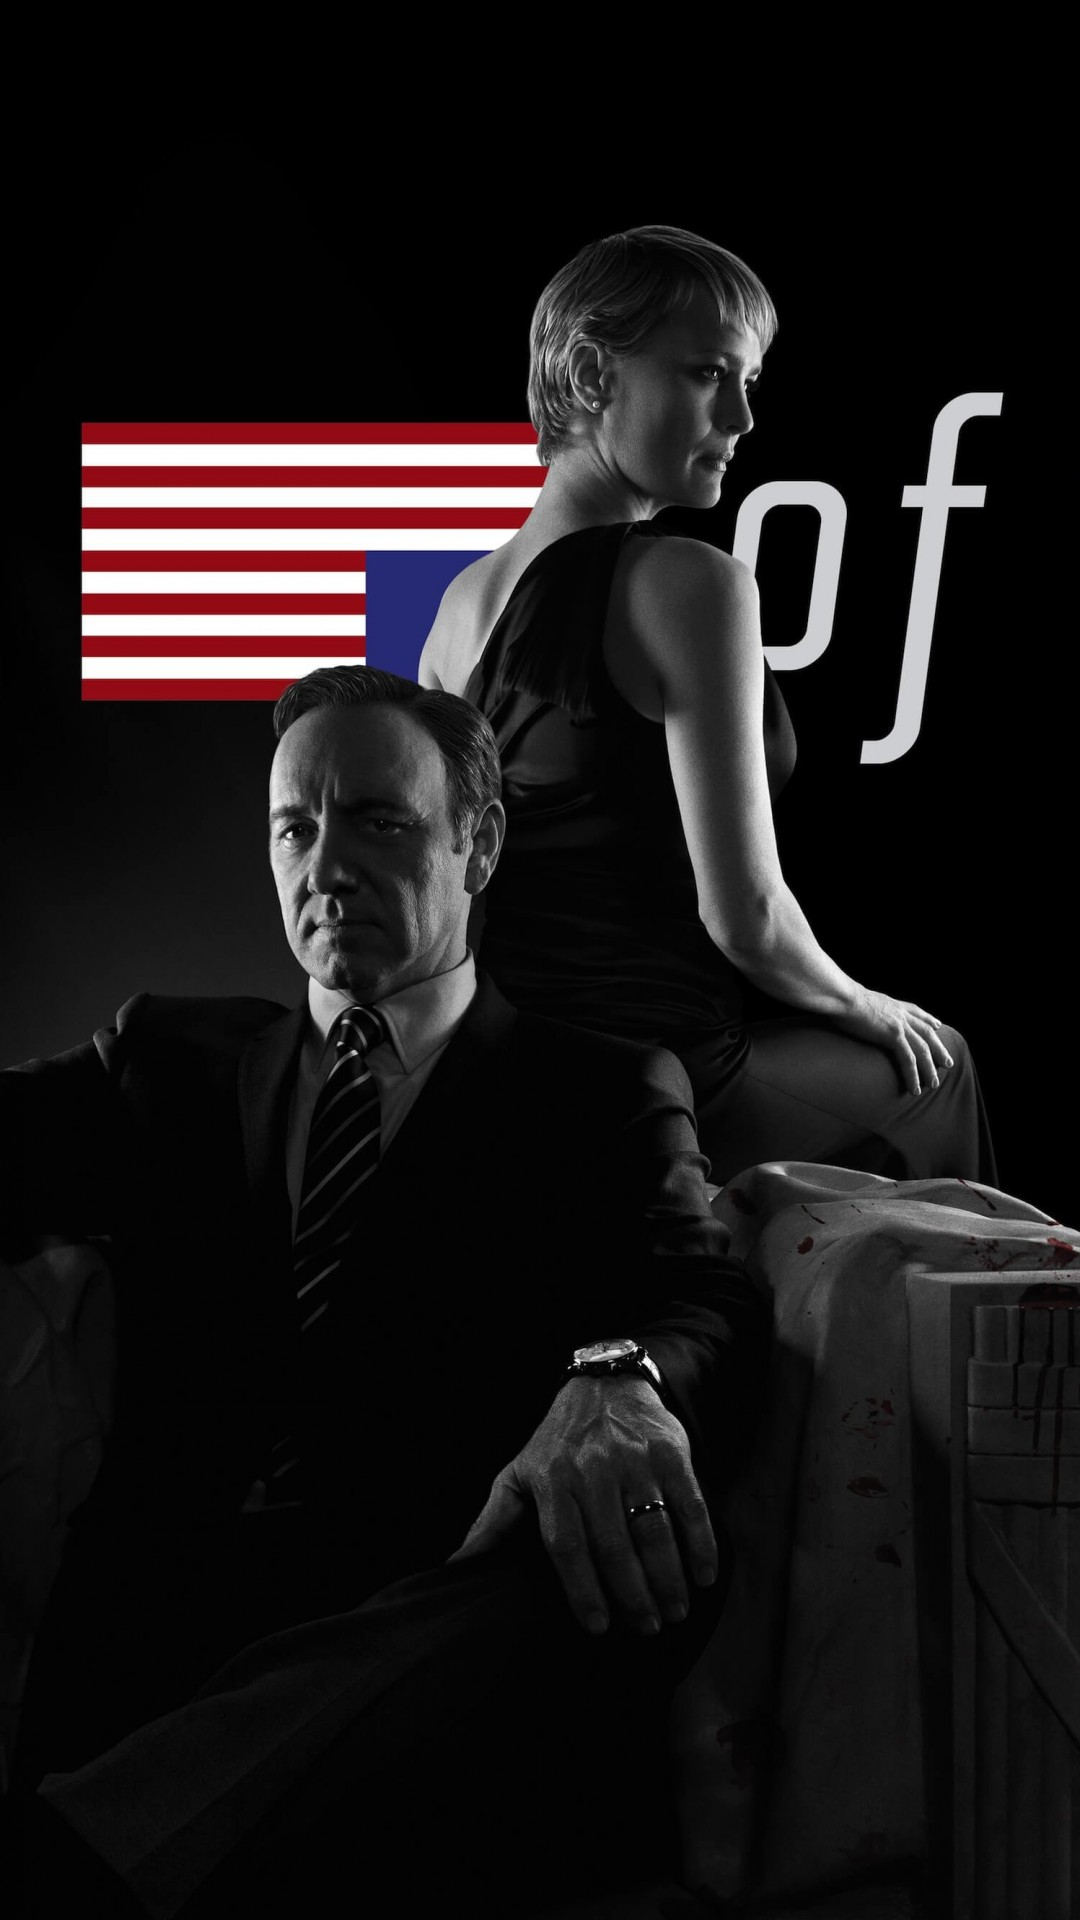 House of Cards - Black & White Wallpaper for SAMSUNG Galaxy Note 3